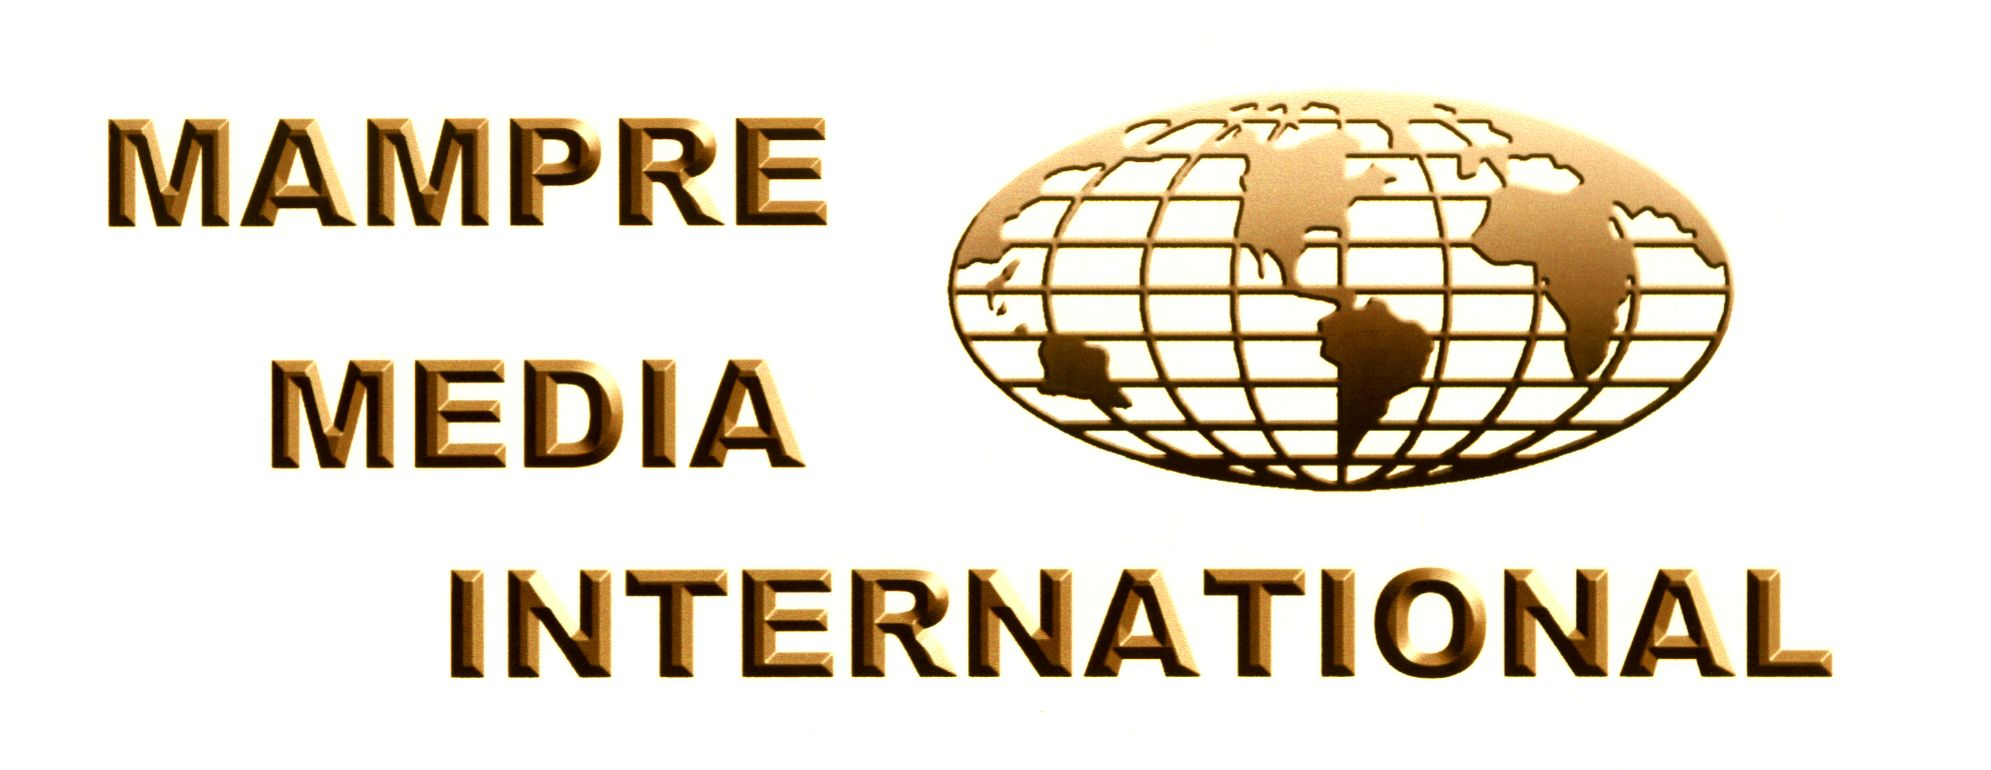 Mampre Media International